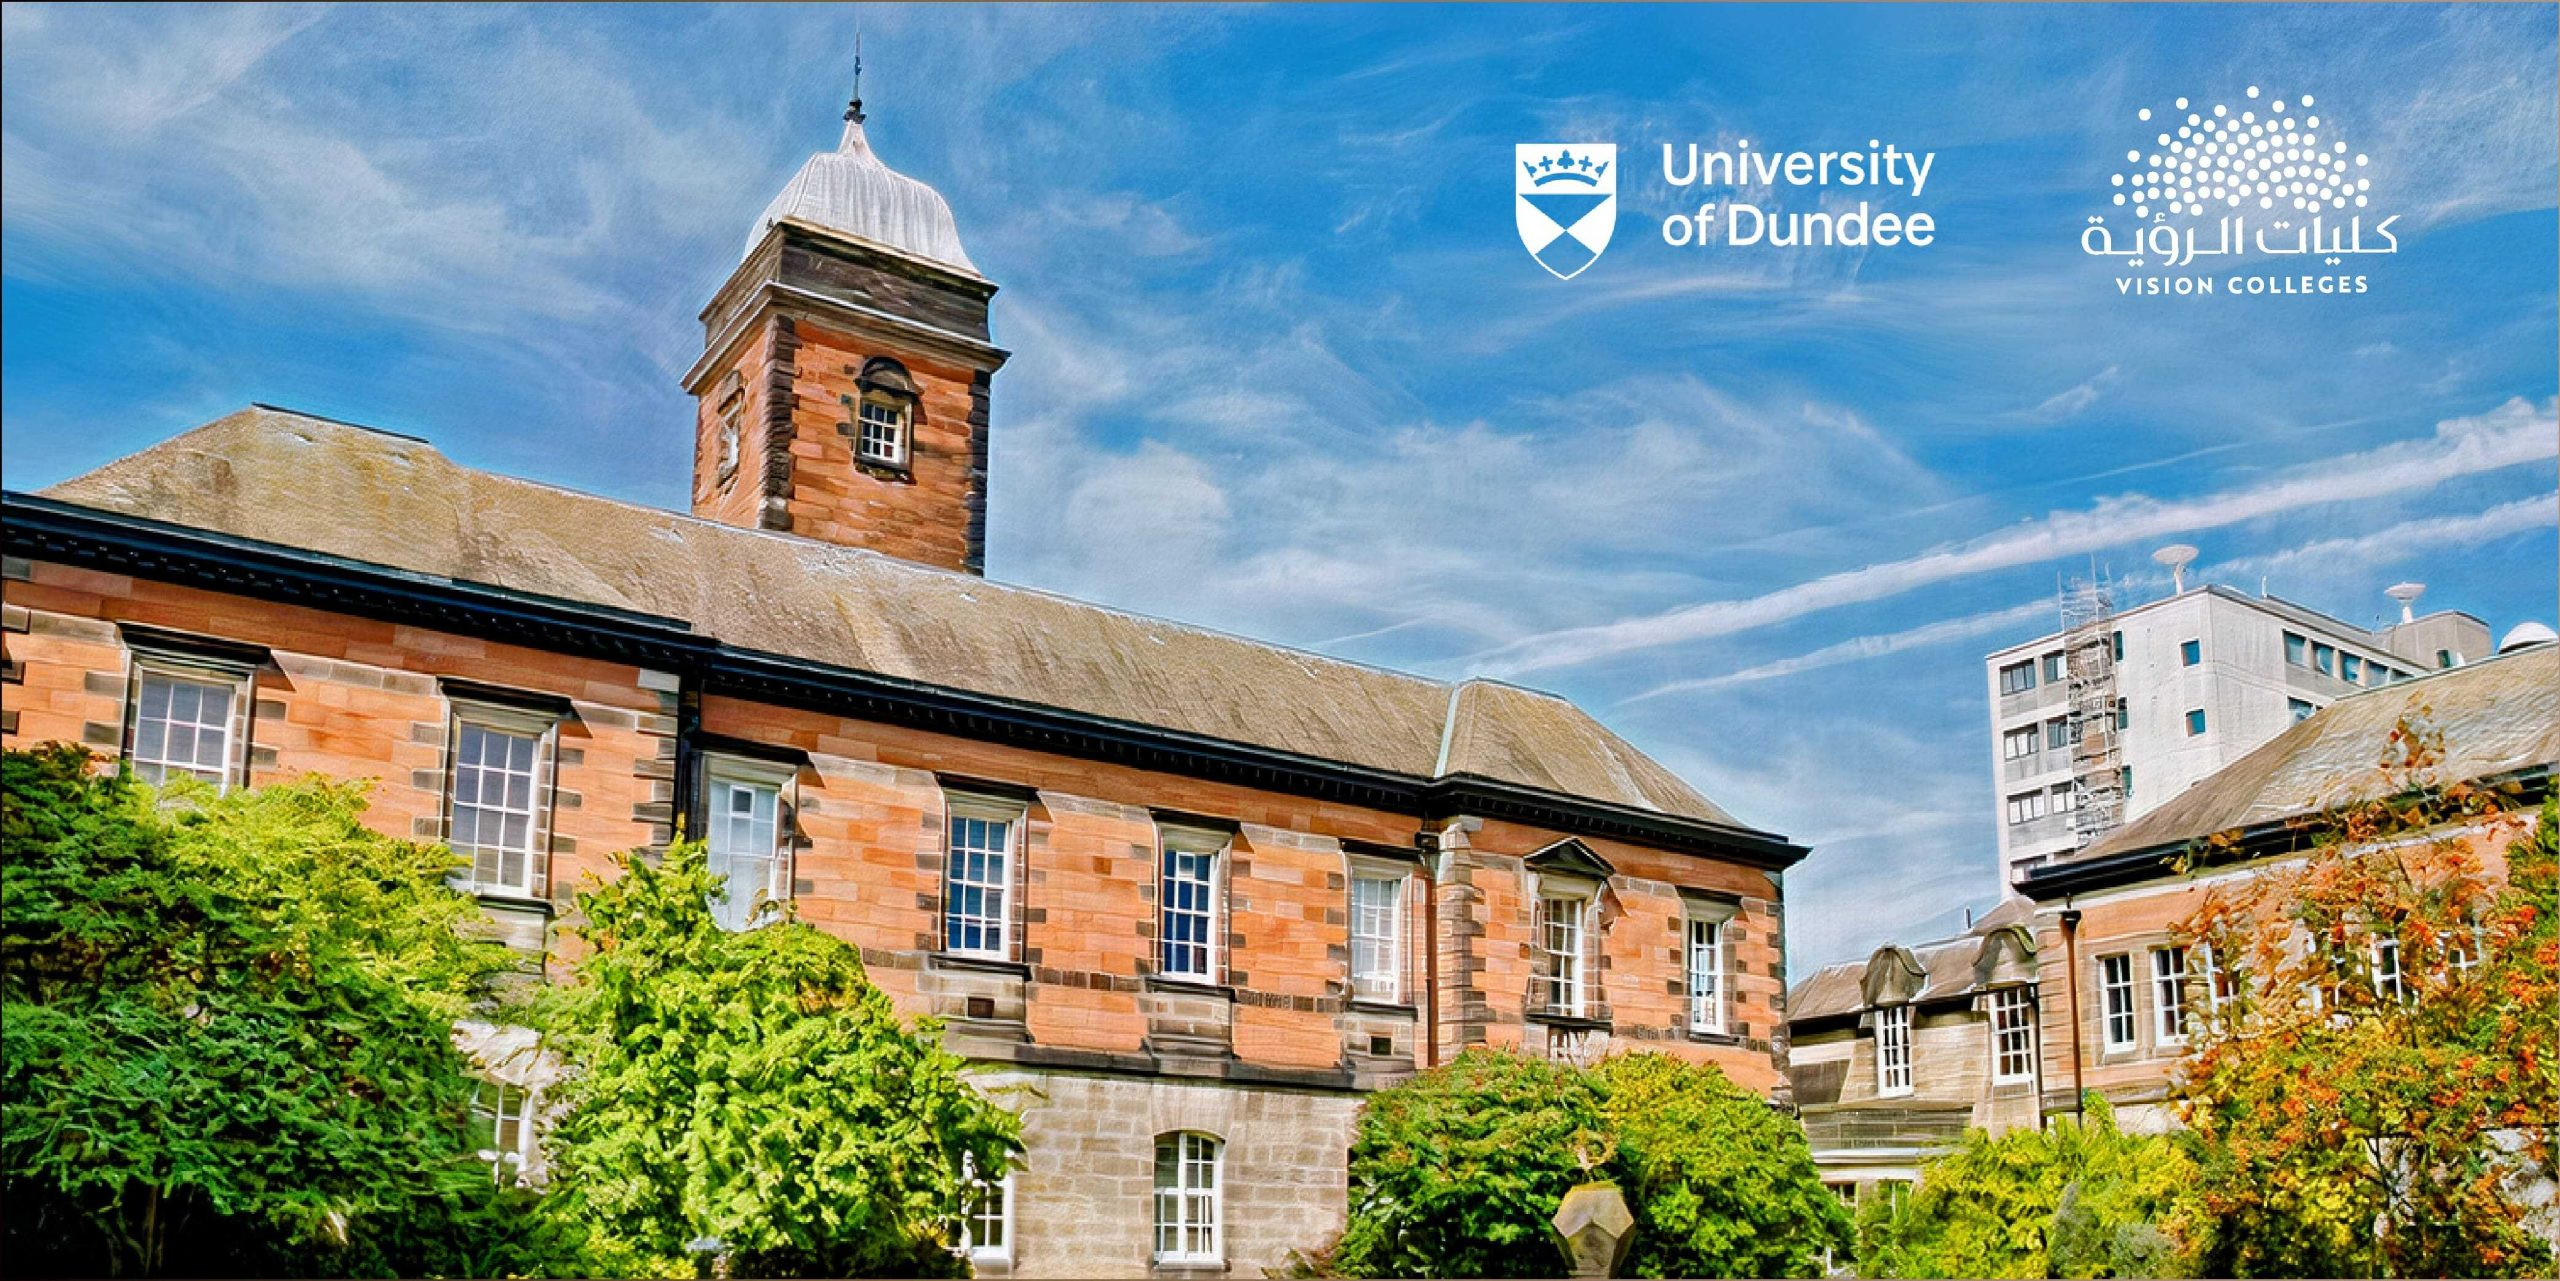 Vision Colleges collaborates with the University of Dundee